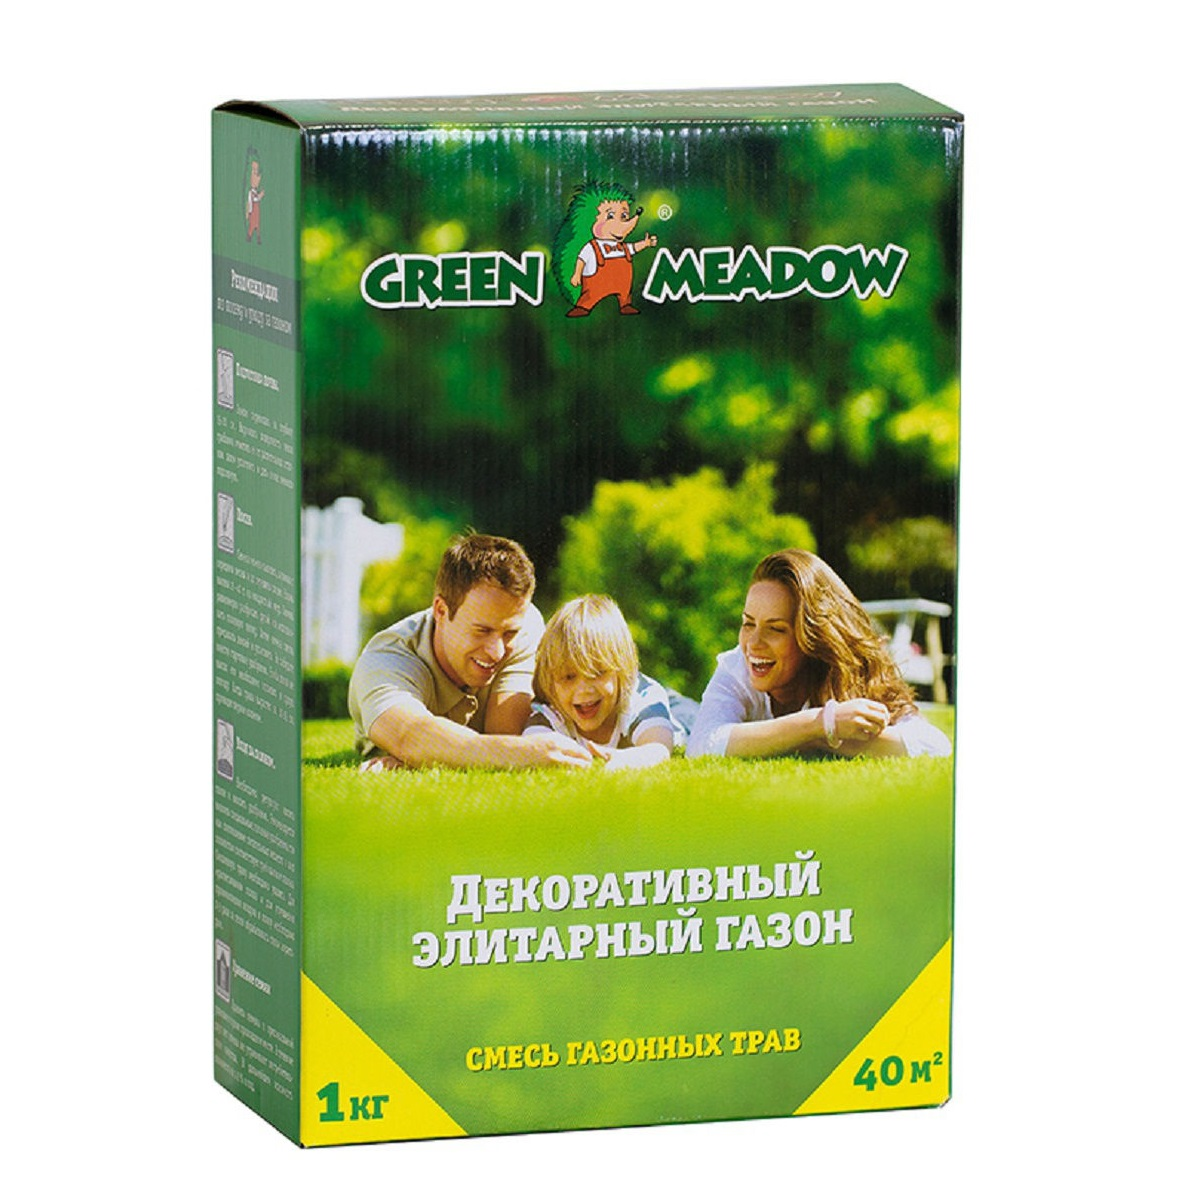 семена green meadow игровой газон 500 г Газон Green Meadow декоративный элитарный 1 кг